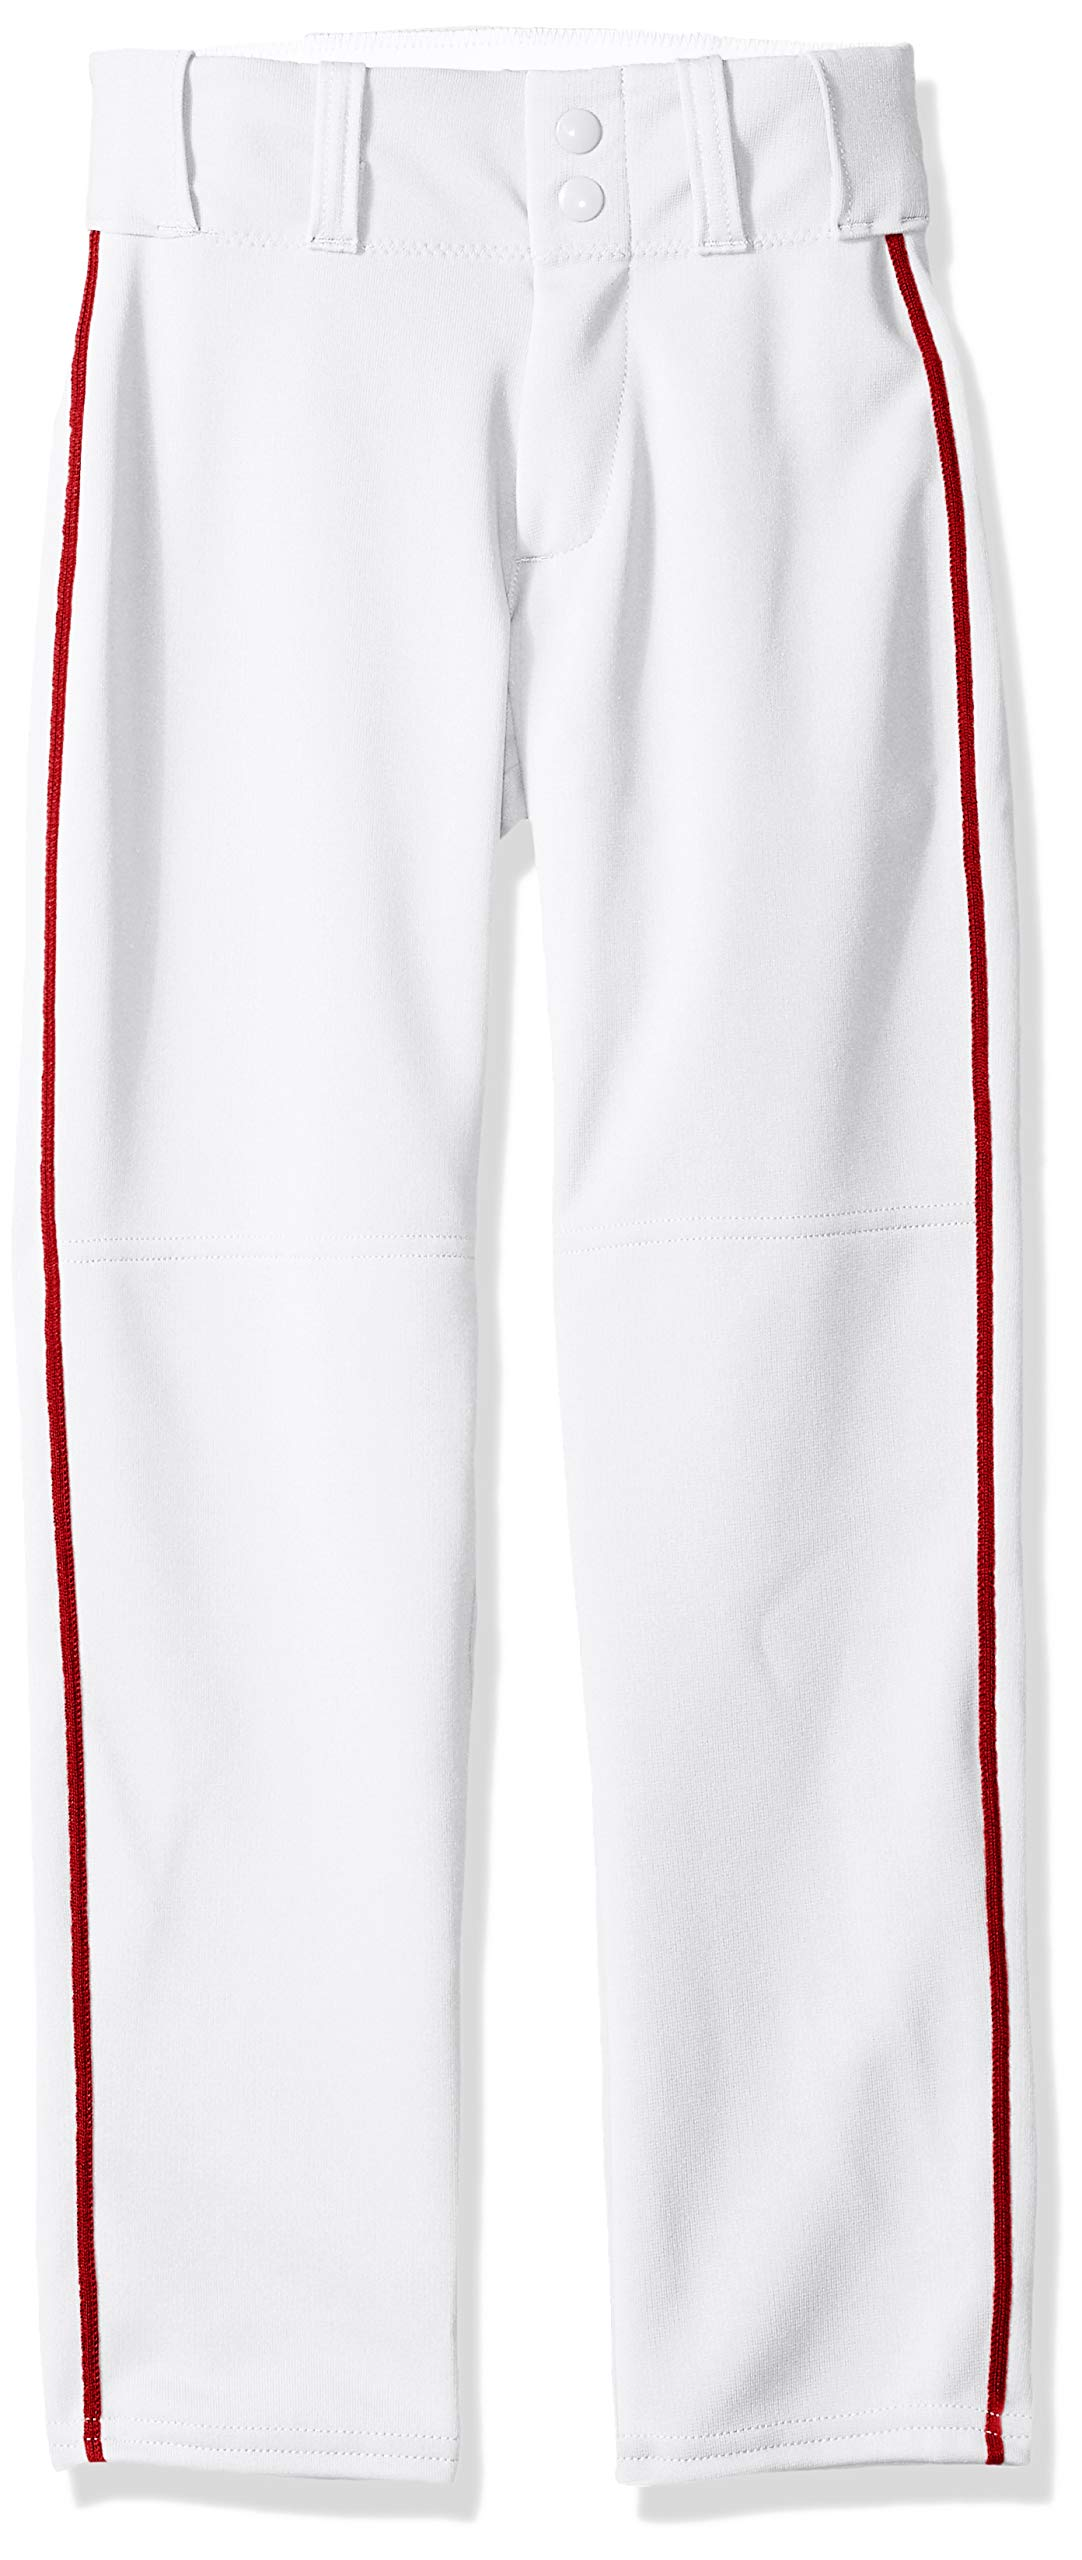 Alleson Ahtletic Boys Youth Baseball Pants with Braid, White/Scarlet, X-Large by Alleson Athletic